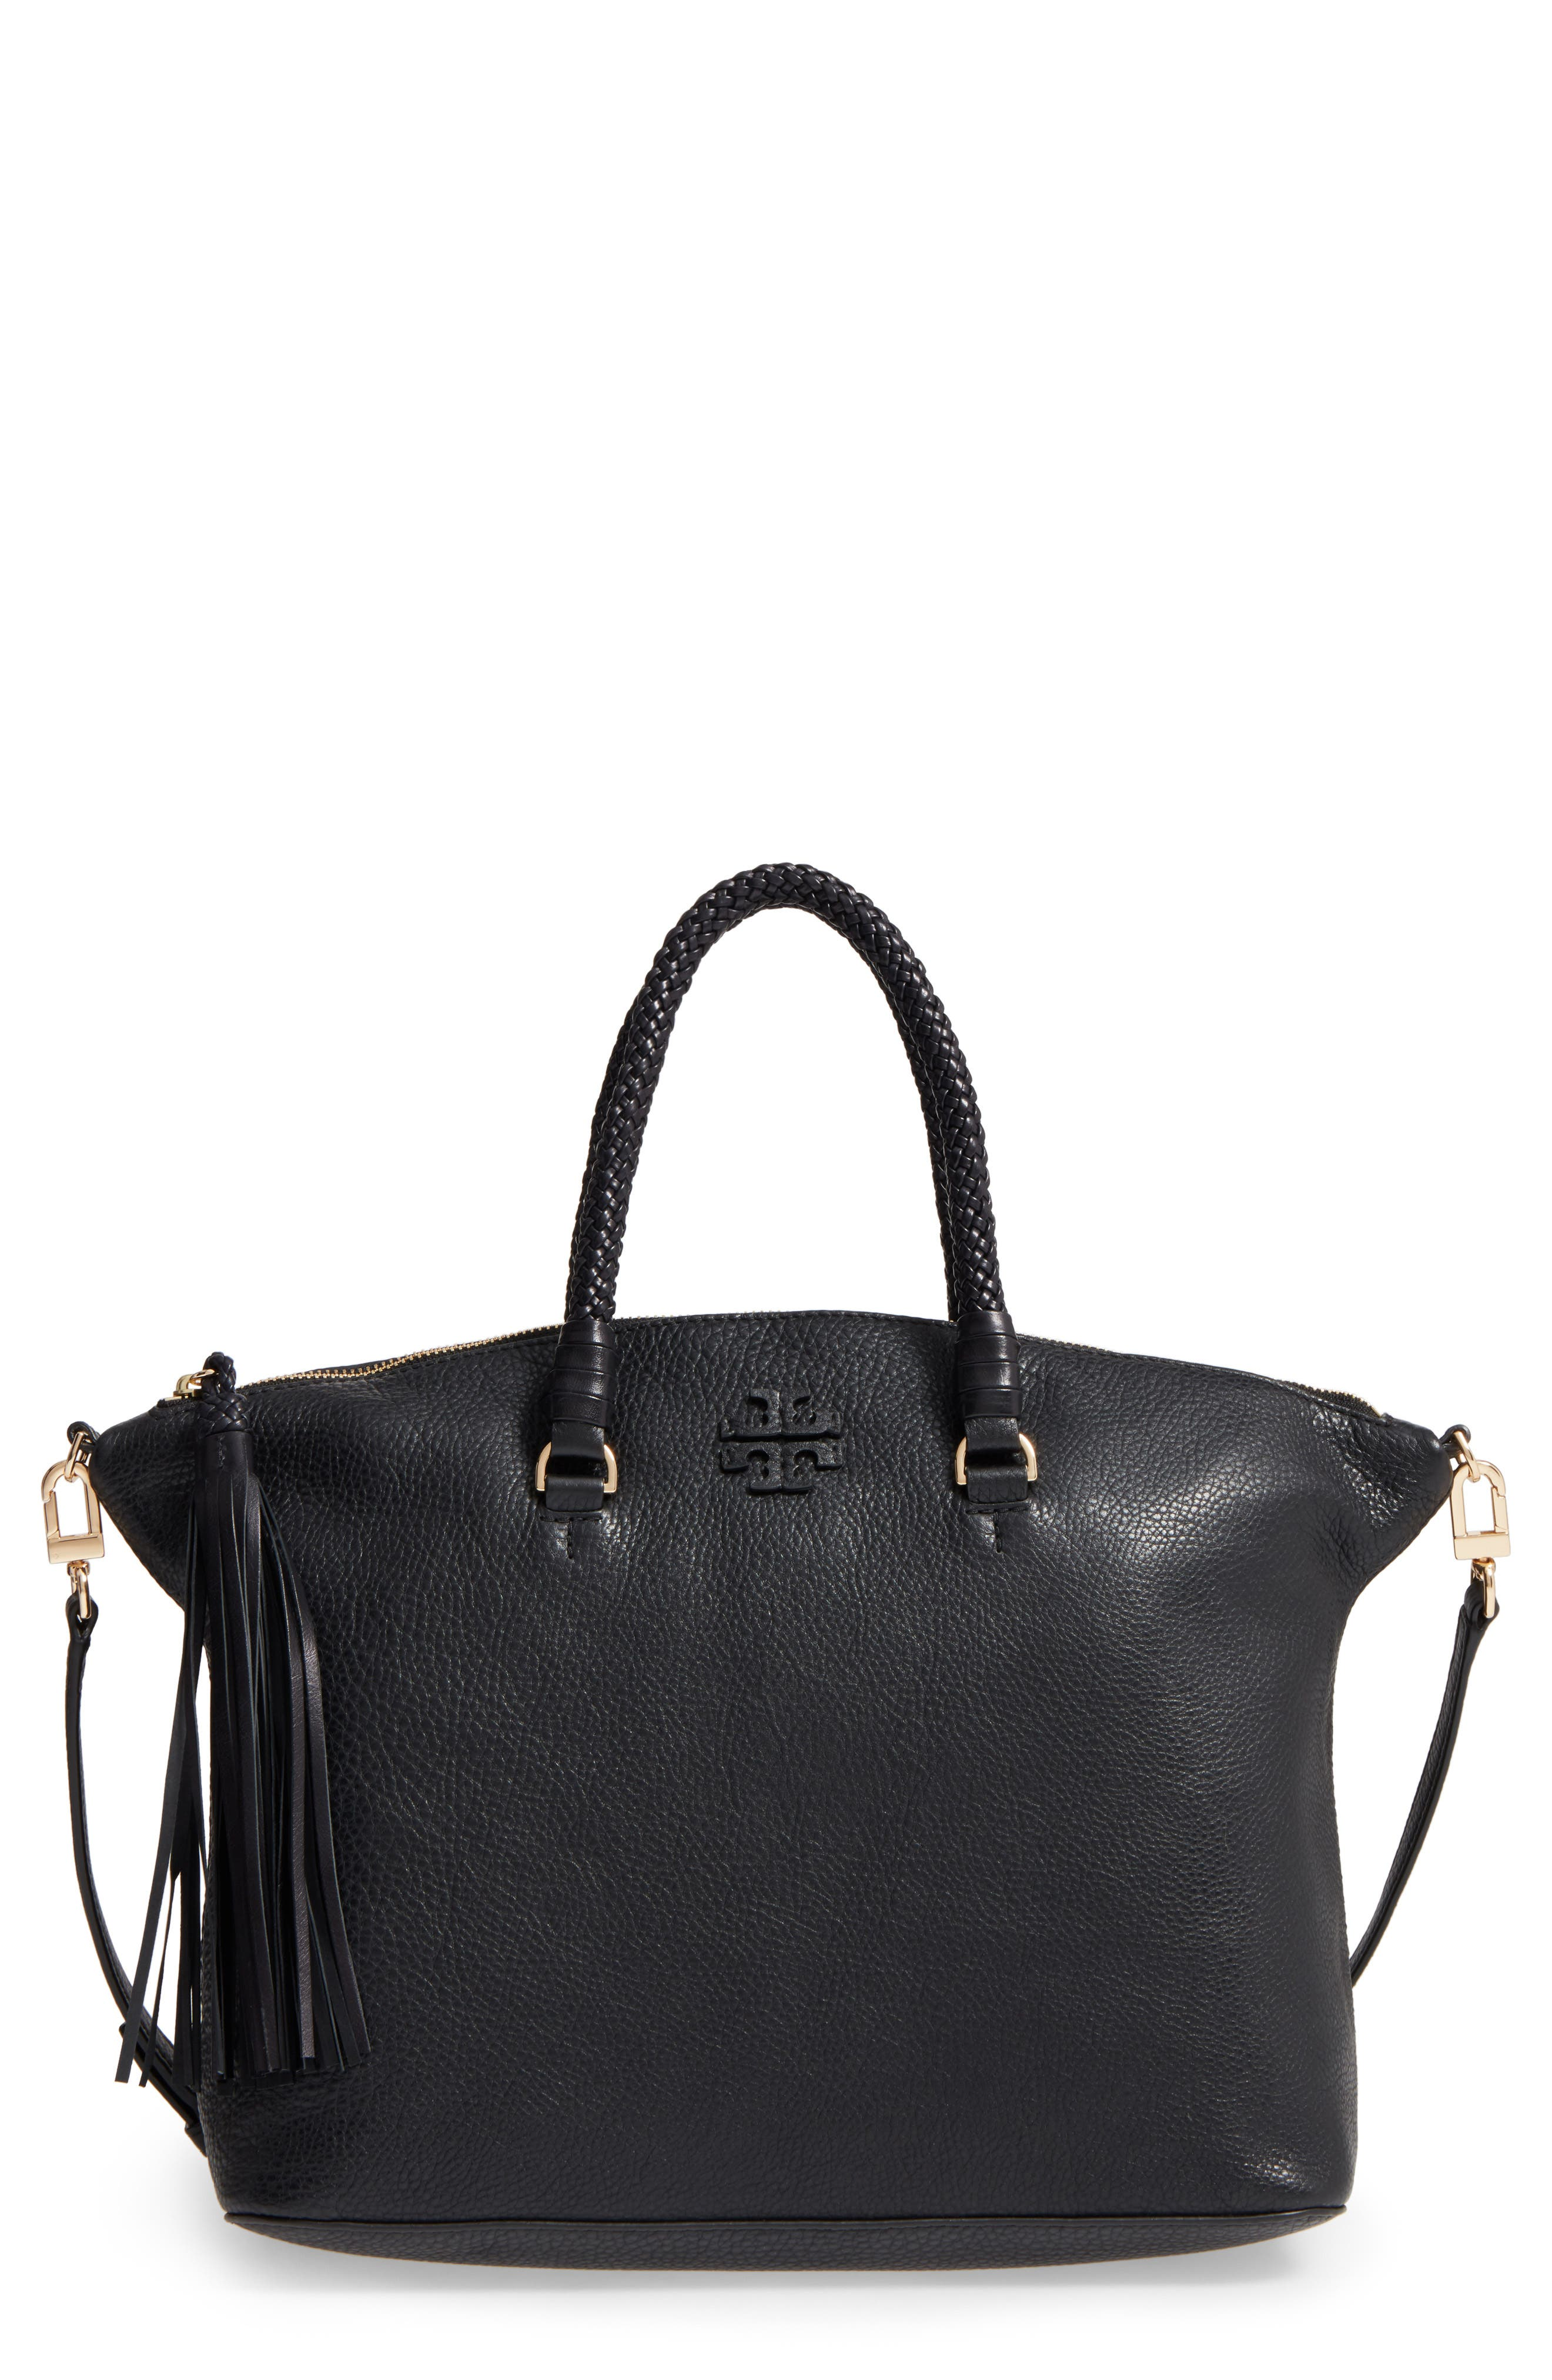 TORY BURCH,                             Taylor Leather Satchel,                             Main thumbnail 1, color,                             001